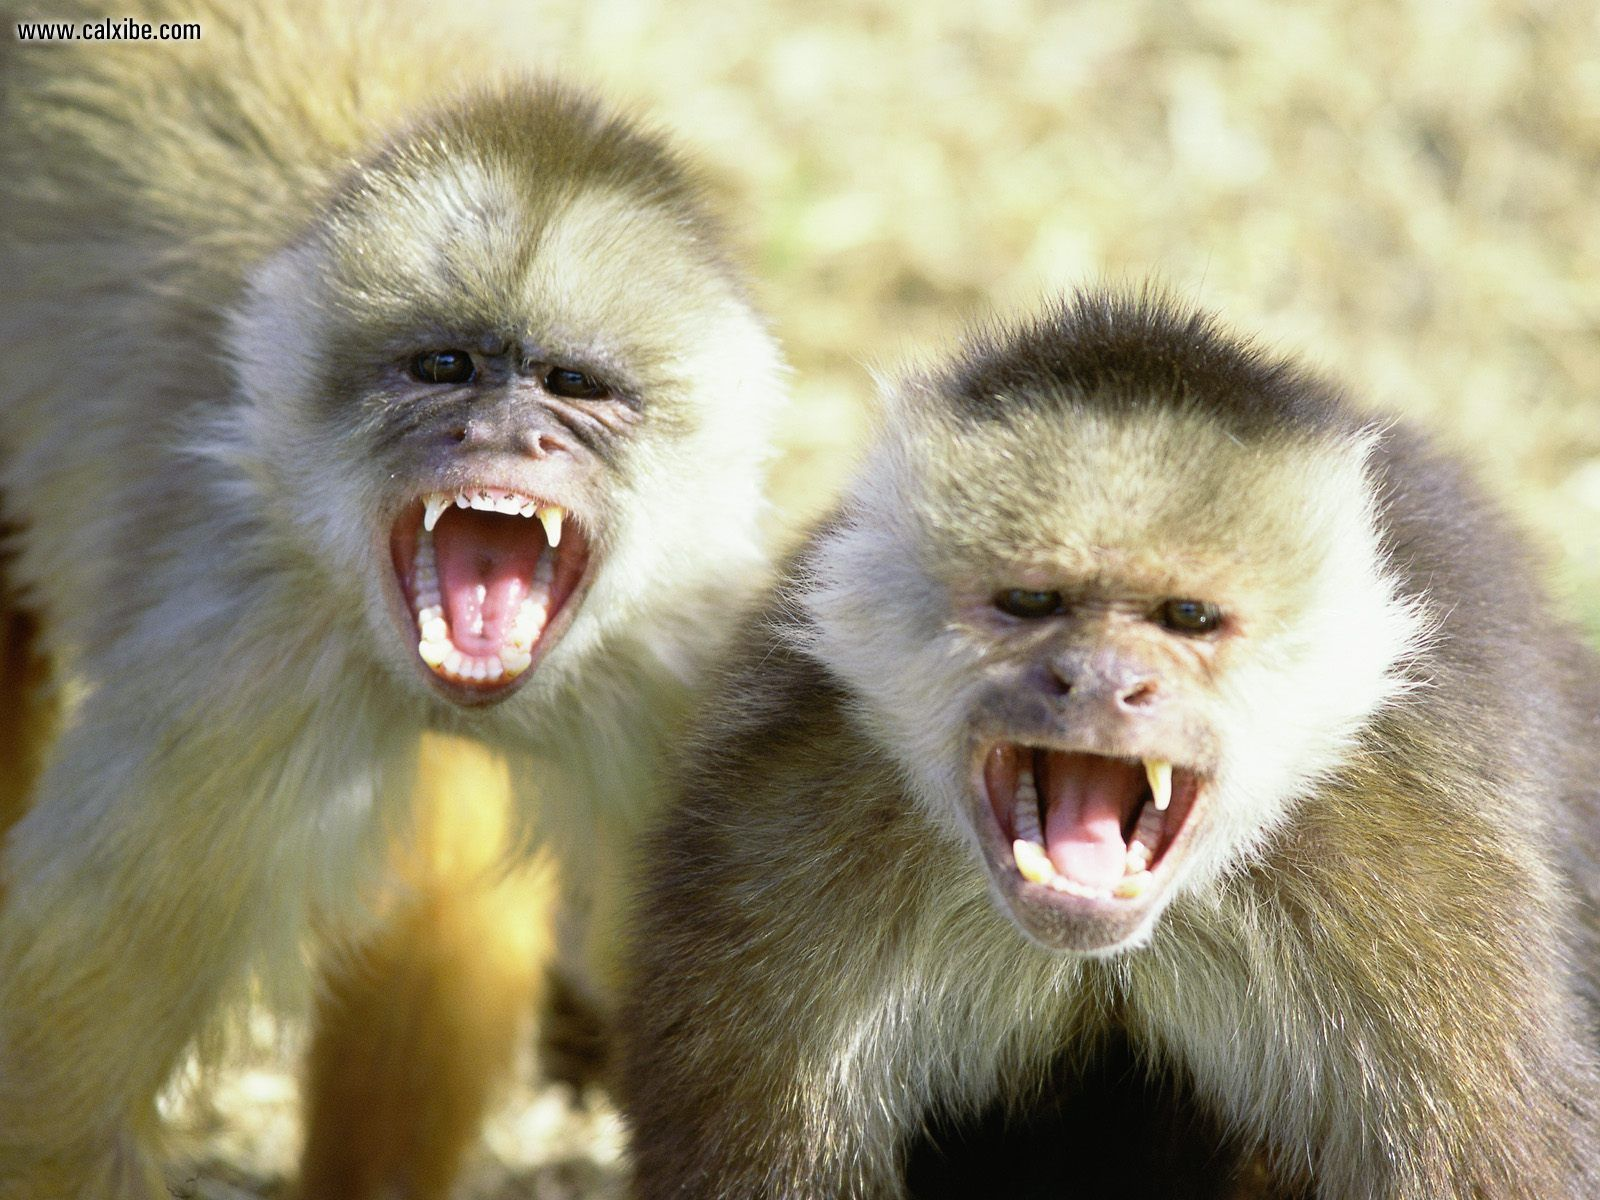 Animal Desktop Wallpapers Capuchin Monkeys Wallpapers